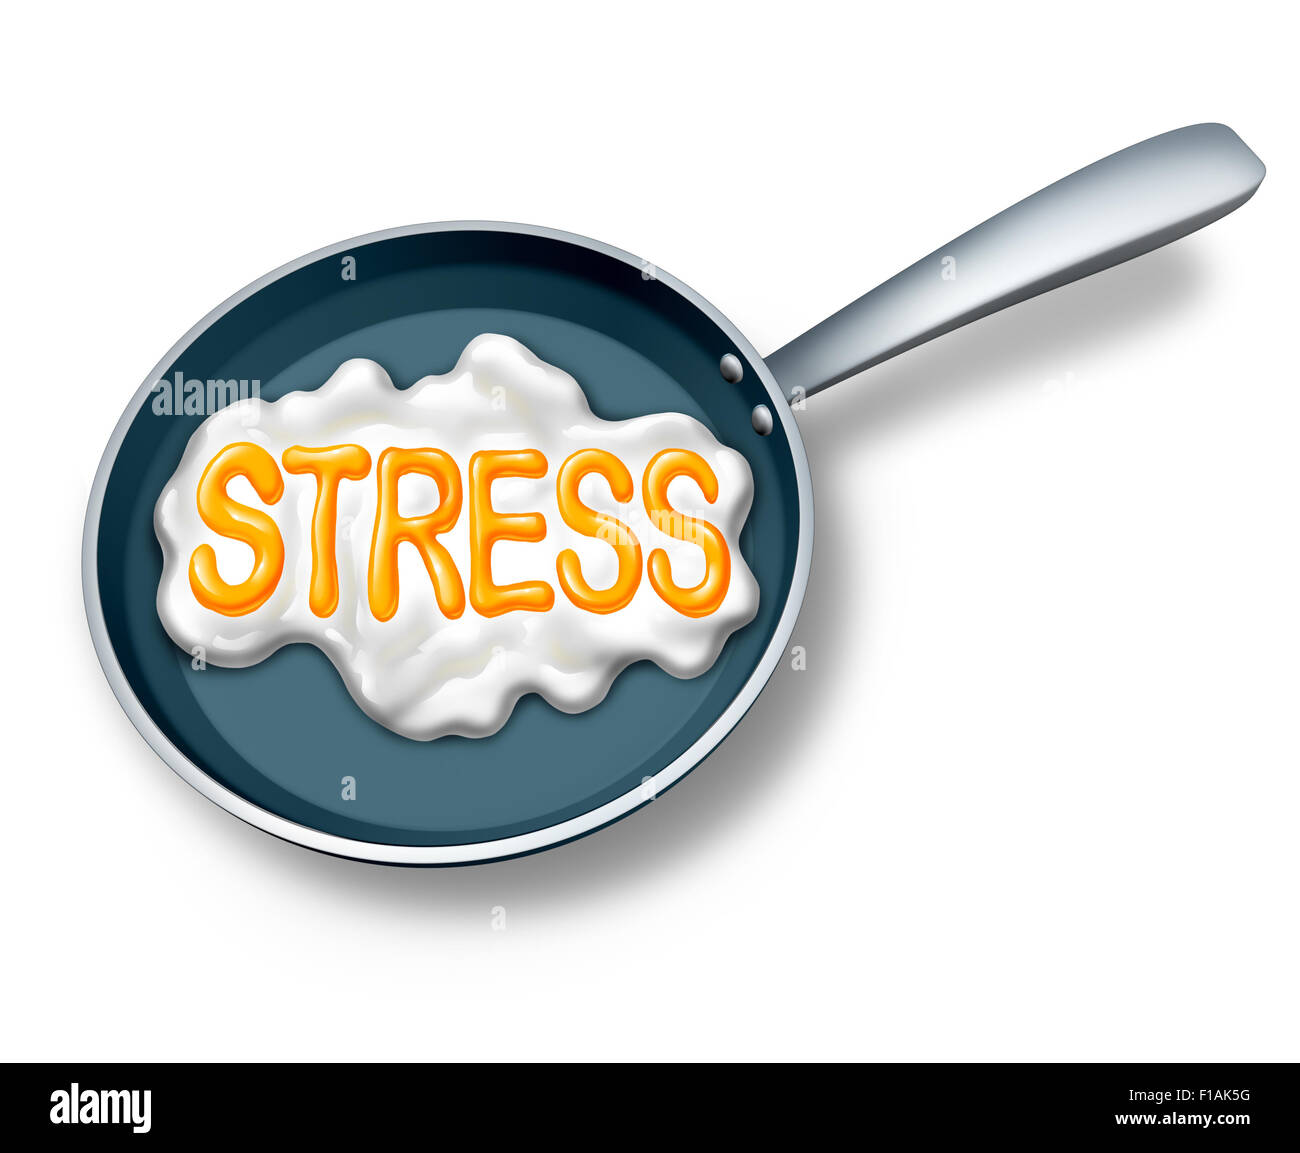 Stress concept and stressed out symbol or work burnout icon as a fried egg in a hot pan shaped as text as a mental - Stock Image